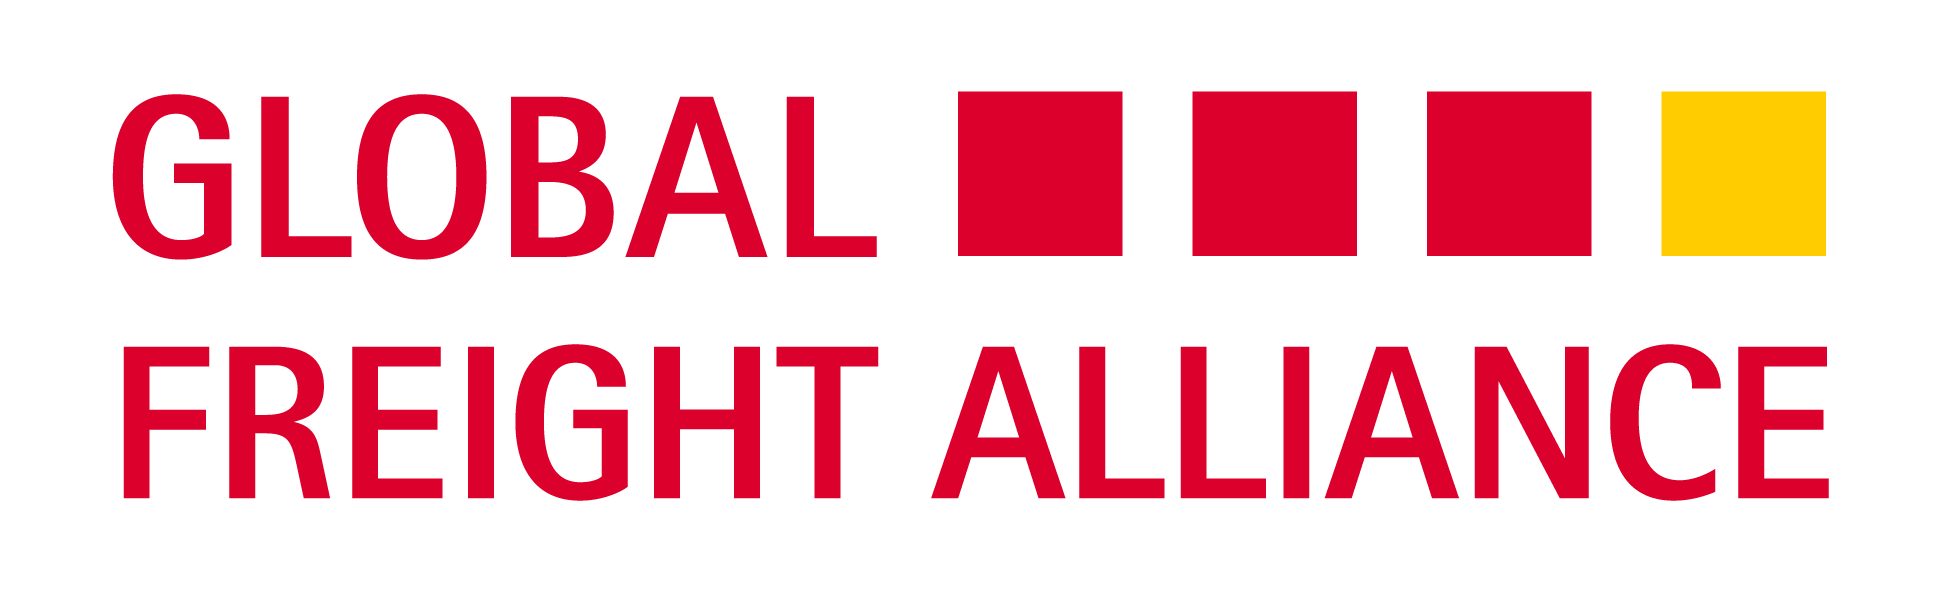 Global Freight Alliance Logo